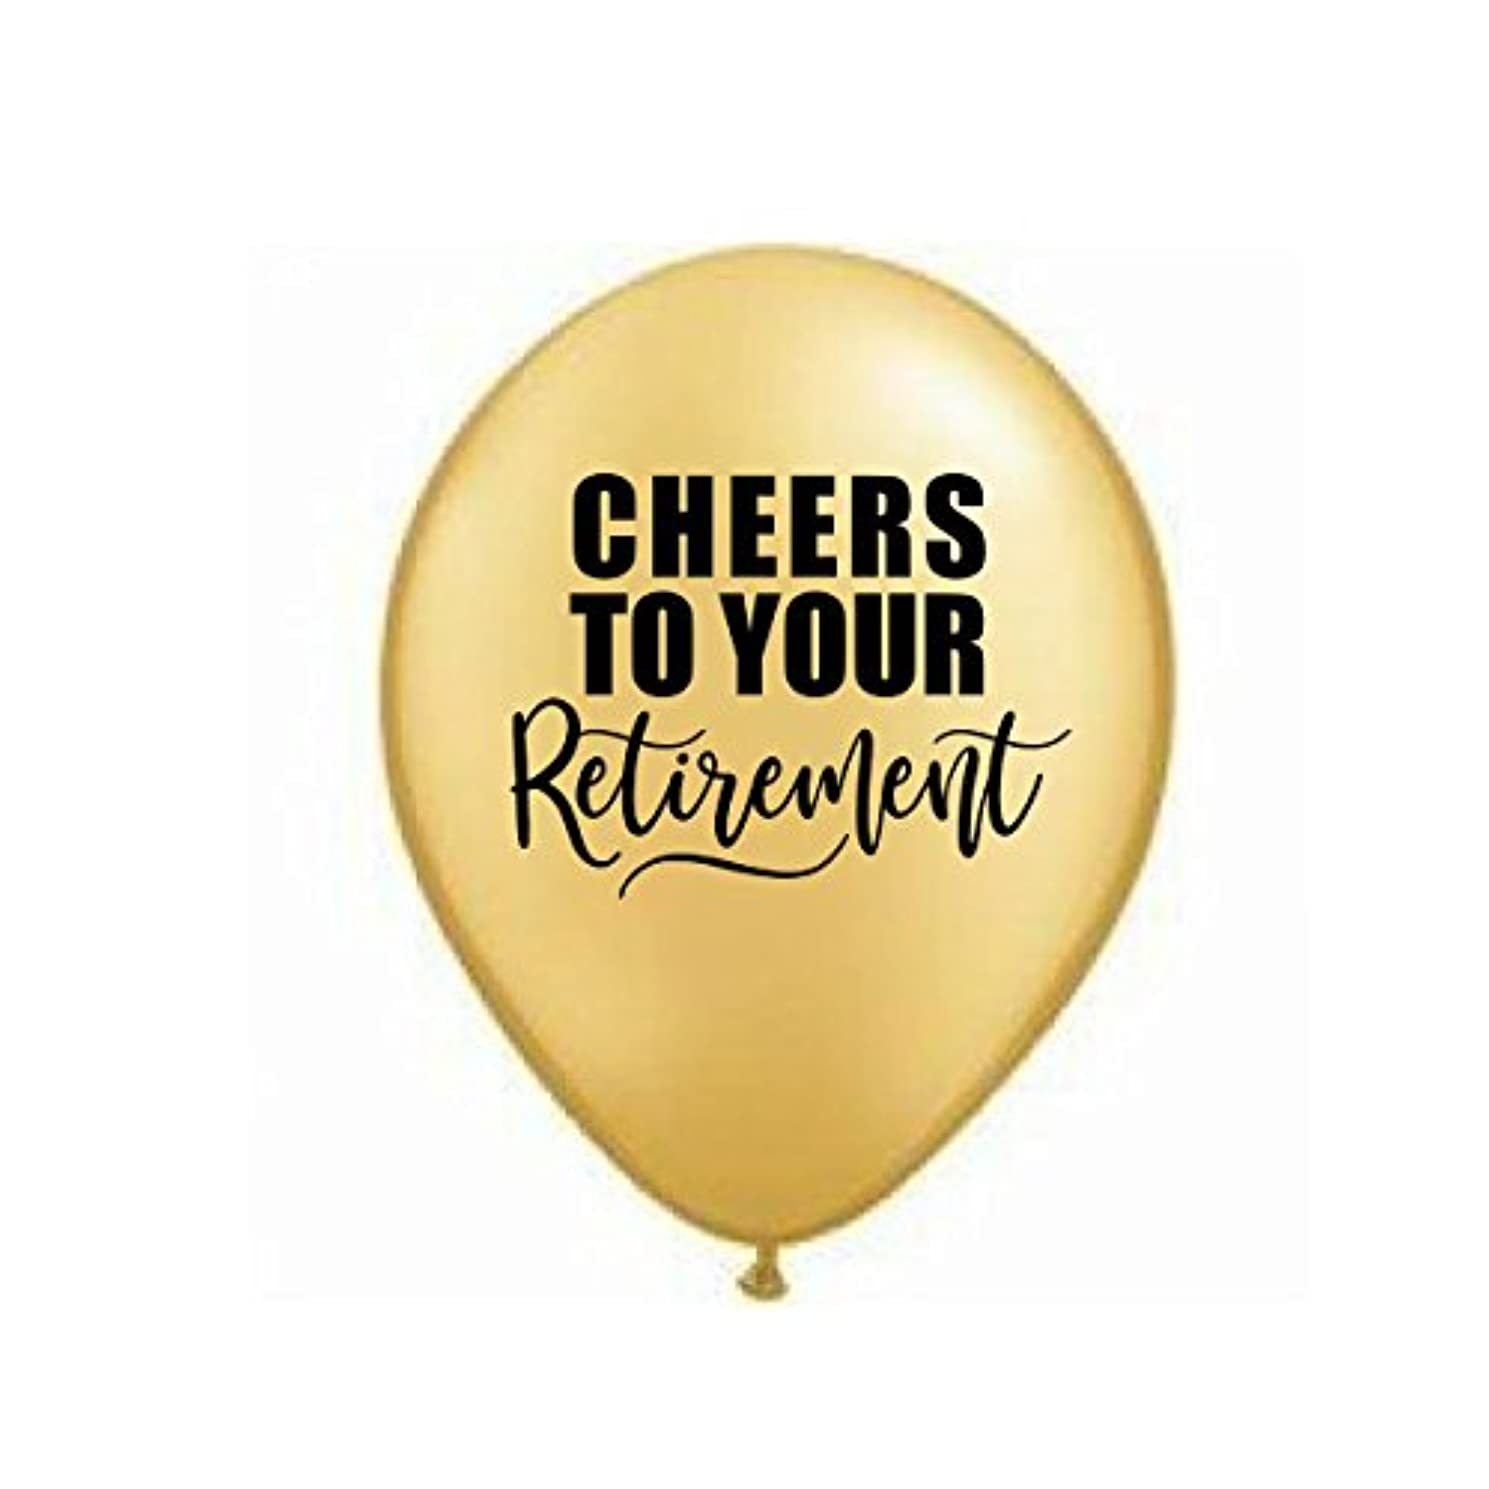 Cheers to Your Retirement, Gold Retirement Balloons, Retirement Party Balloons, Retirement Decor, Set of 3, Retirement Party Decorations, Gold Balloons